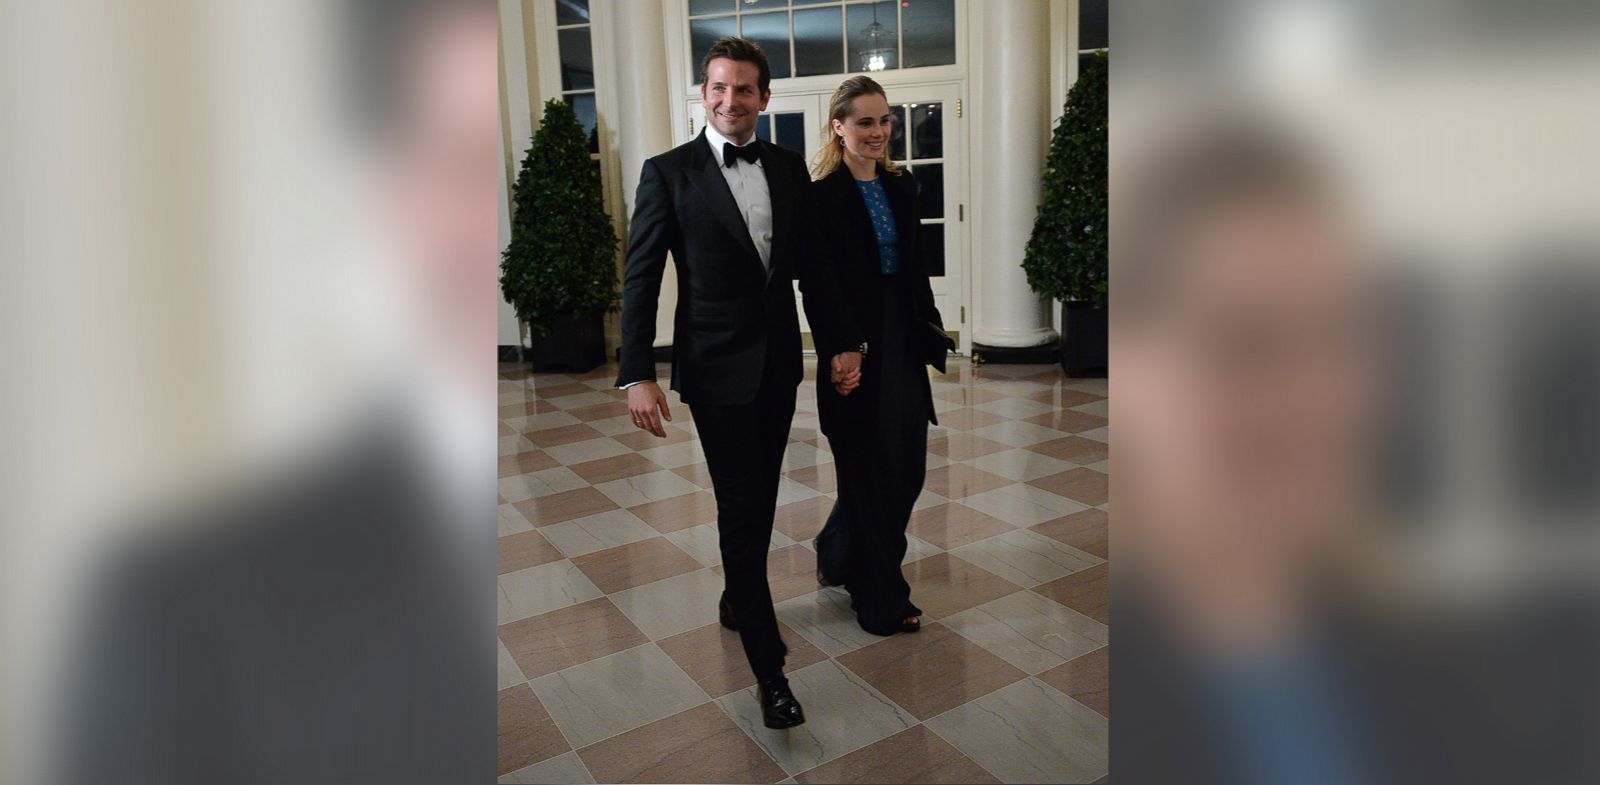 PHOTO: Actor Bradley Cooper and Suki Waterhouse arrive at the White House for the state dinner in honor of French President Francois Hollande on Feb. 11, 2014.